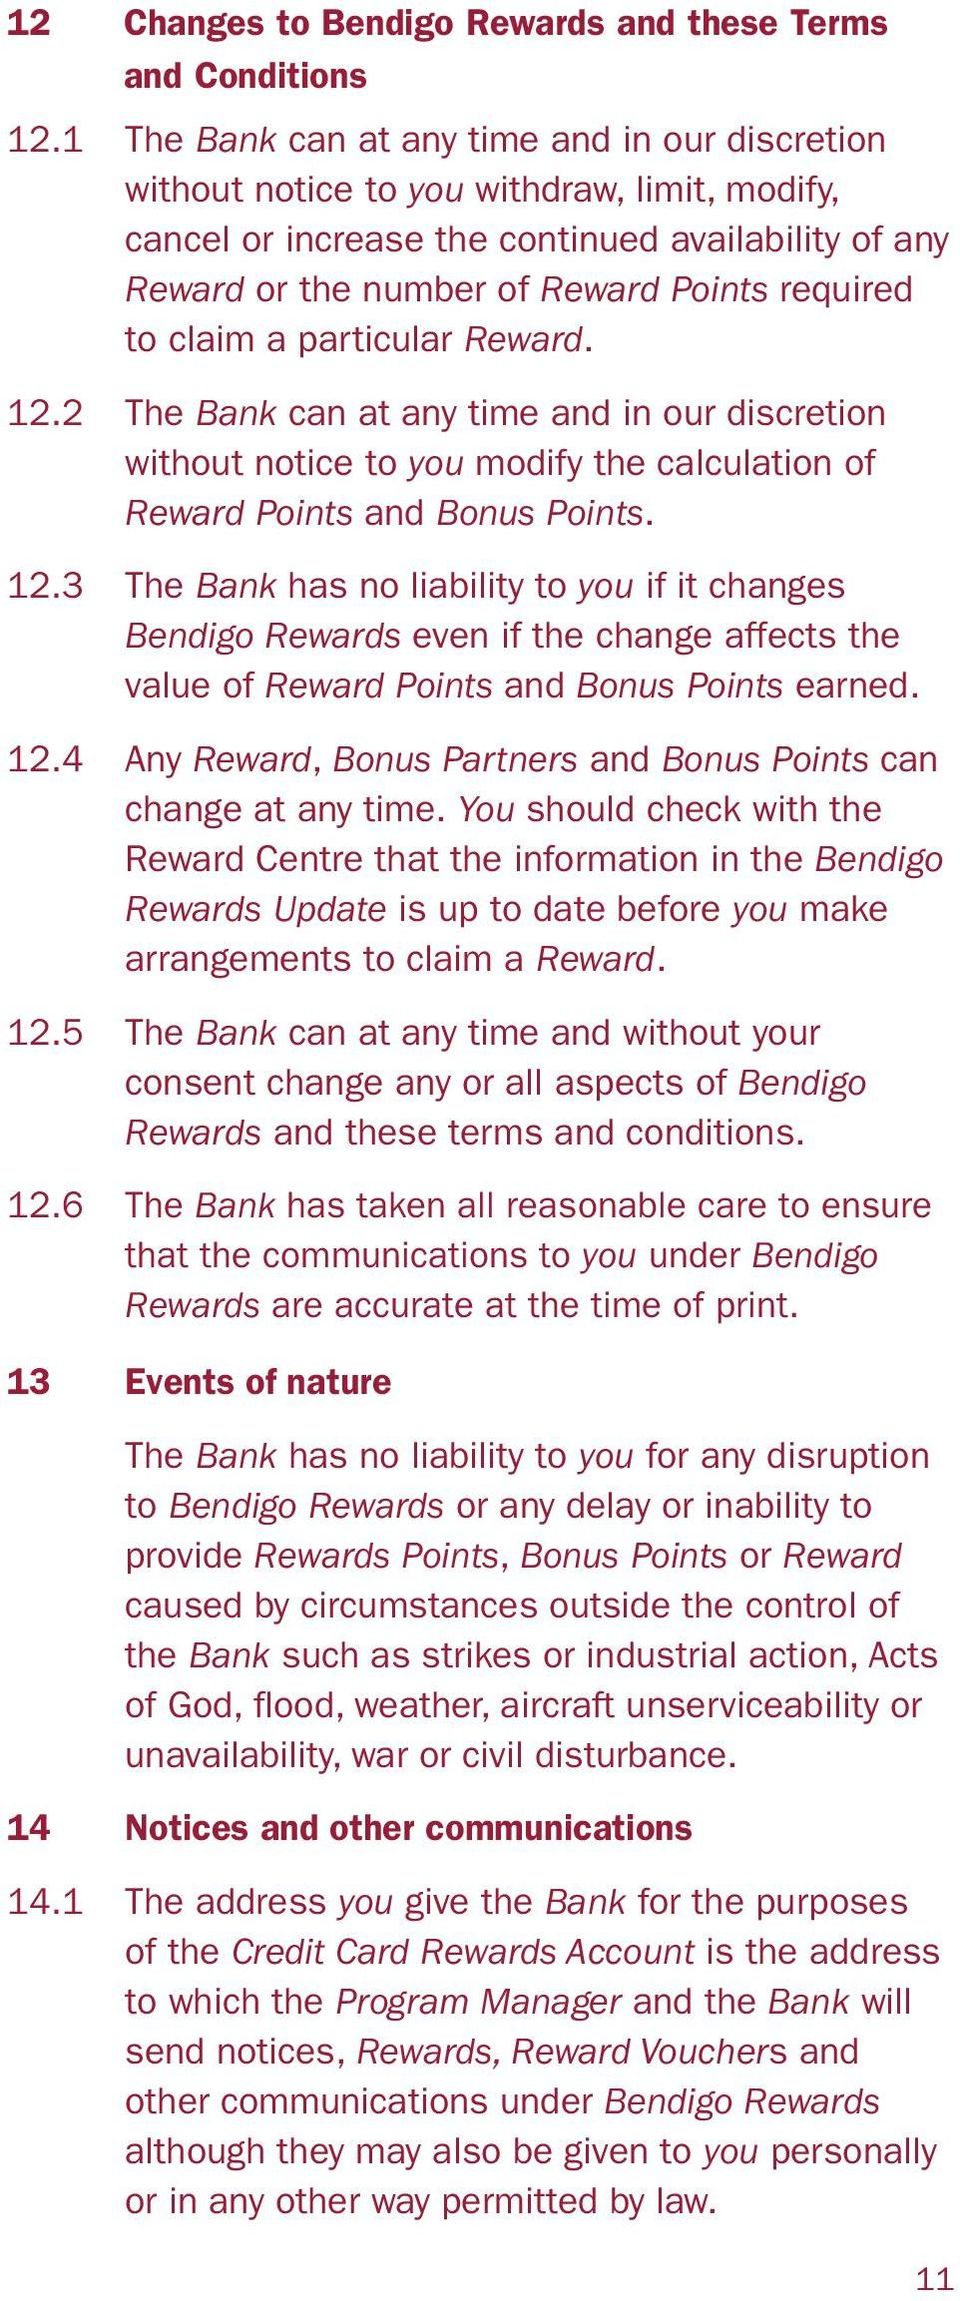 claim a particular Reward. 12.2 The Bank can at any time and in our discretion without notice to you modify the calculation of Reward Points and Bonus Points. 12.3 The Bank has no liability to you if it changes Bendigo Rewards even if the change affects the value of Reward Points and Bonus Points earned.